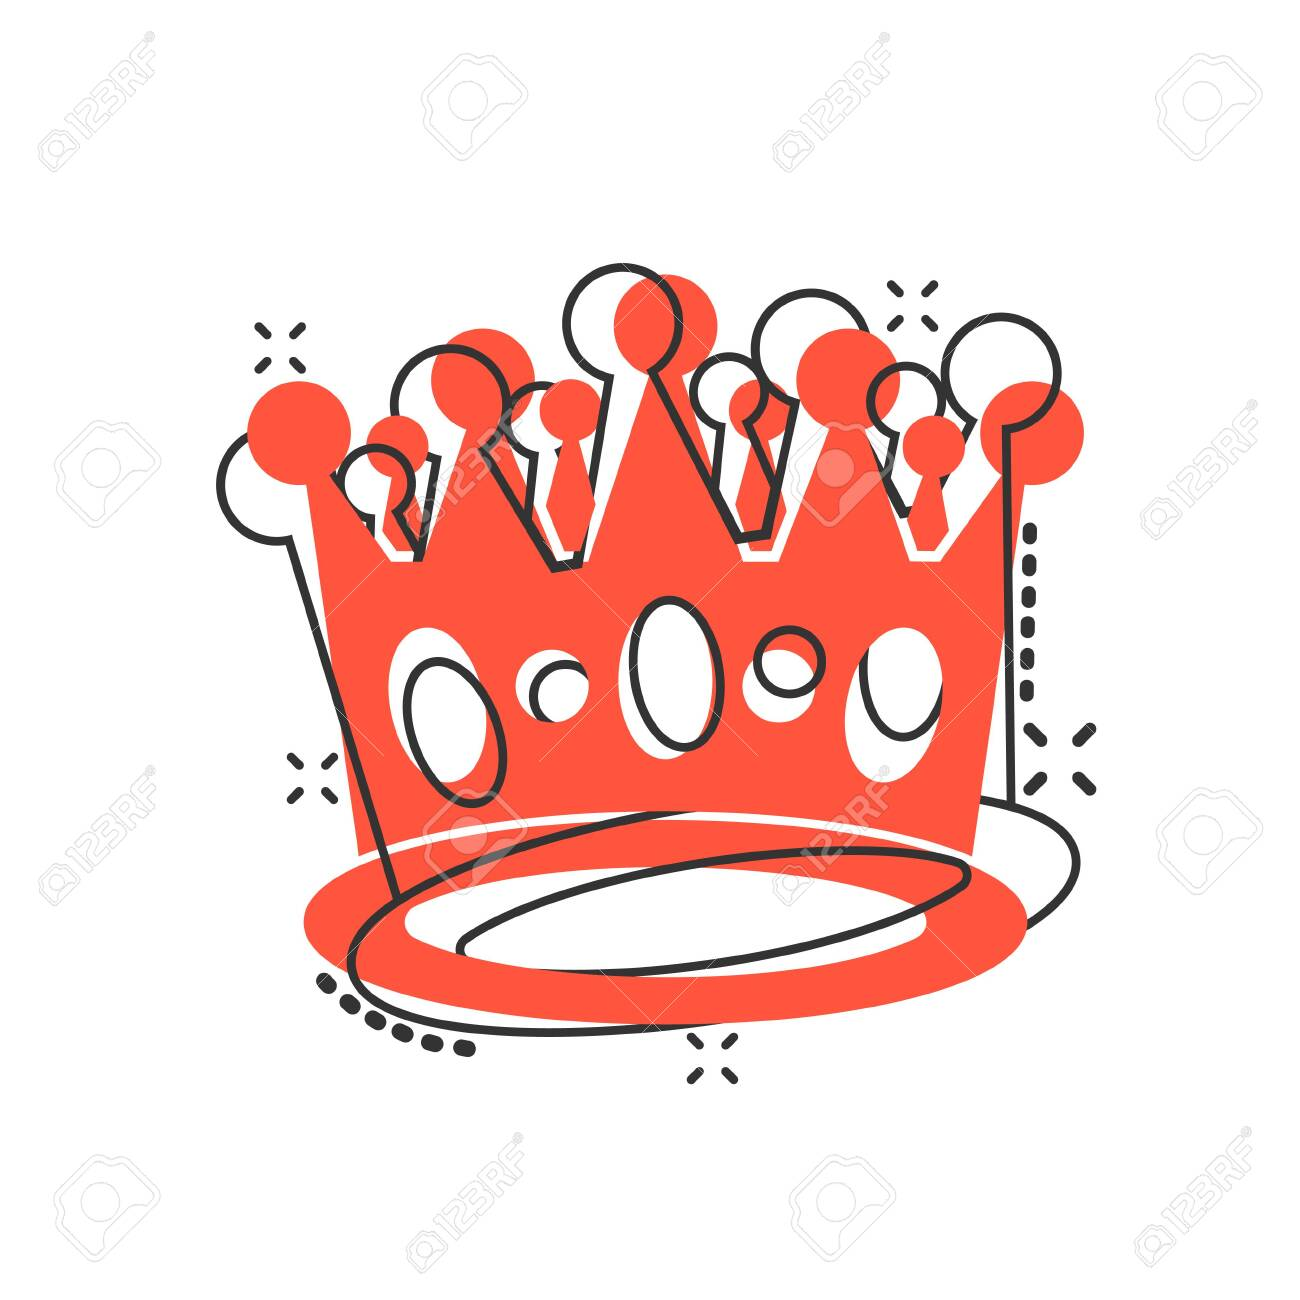 Vector Cartoon Crown Diadem Icon In Comic Style Royalty Crown Royalty Free Cliparts Vectors And Stock Illustration Image 131204184 Crown princes cartoon 6 of 35. 123rf com